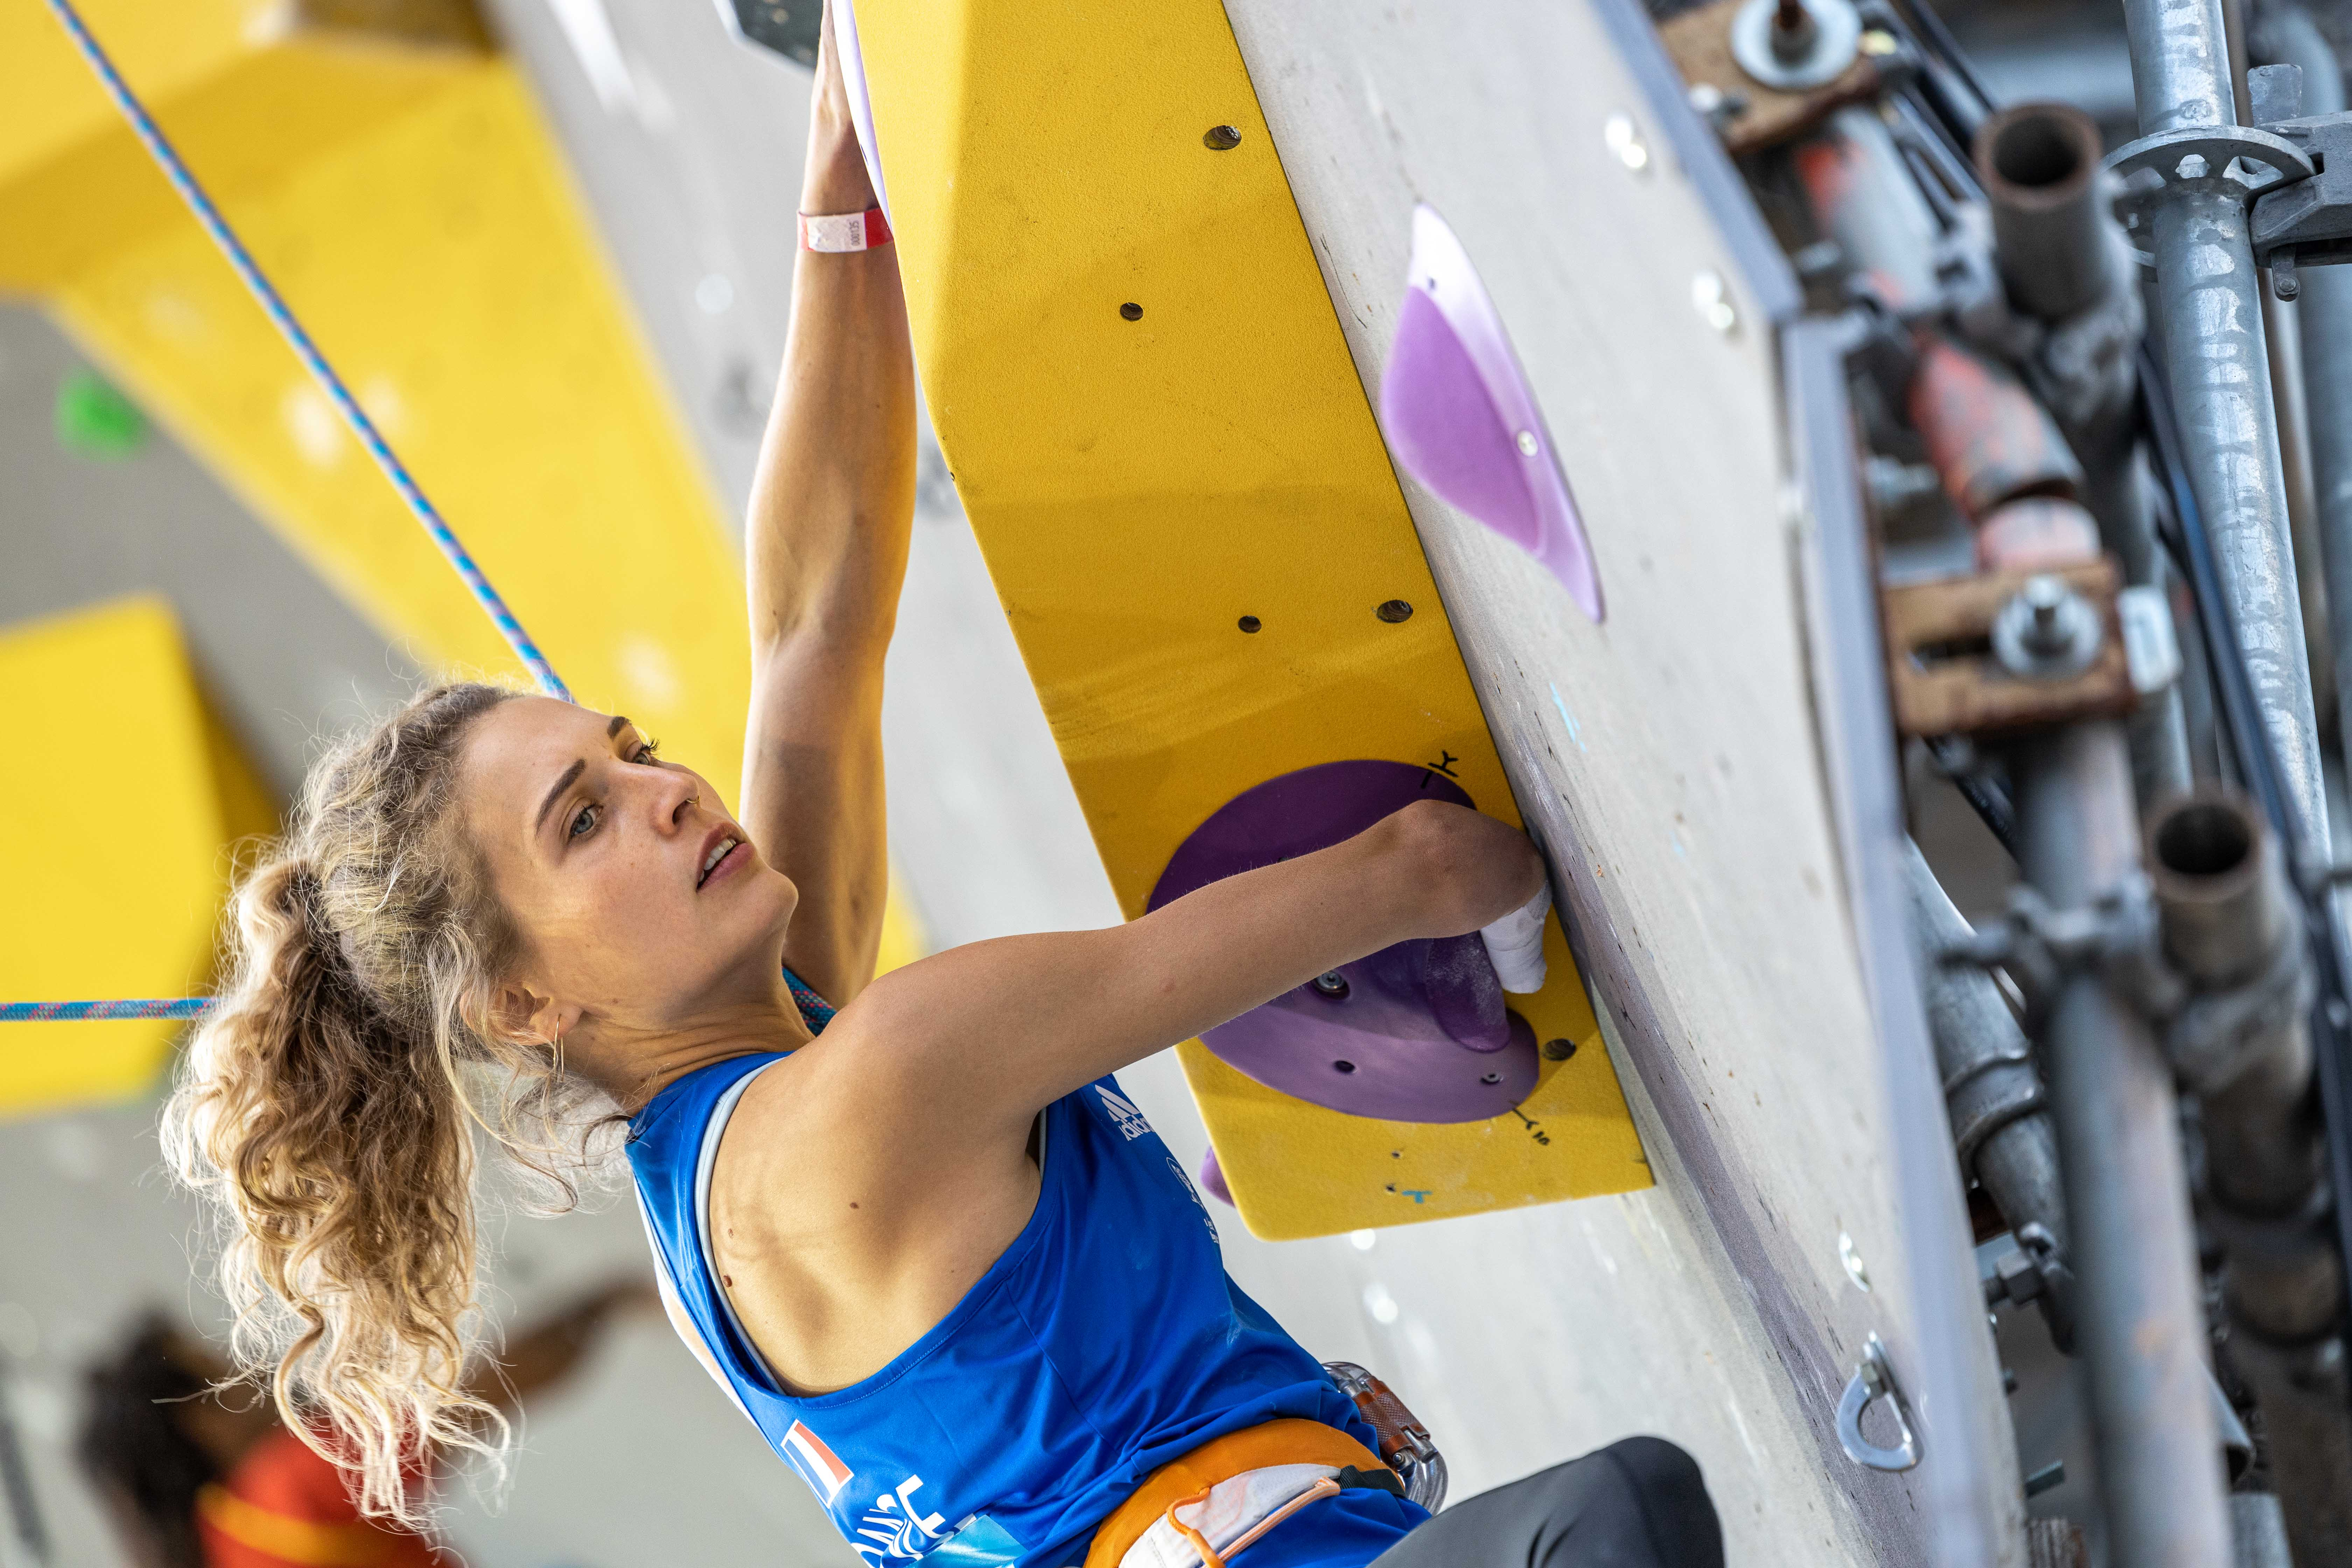 210715 IFSC News France dominates the Paraclimbing finals in Briancon wins four gold medals